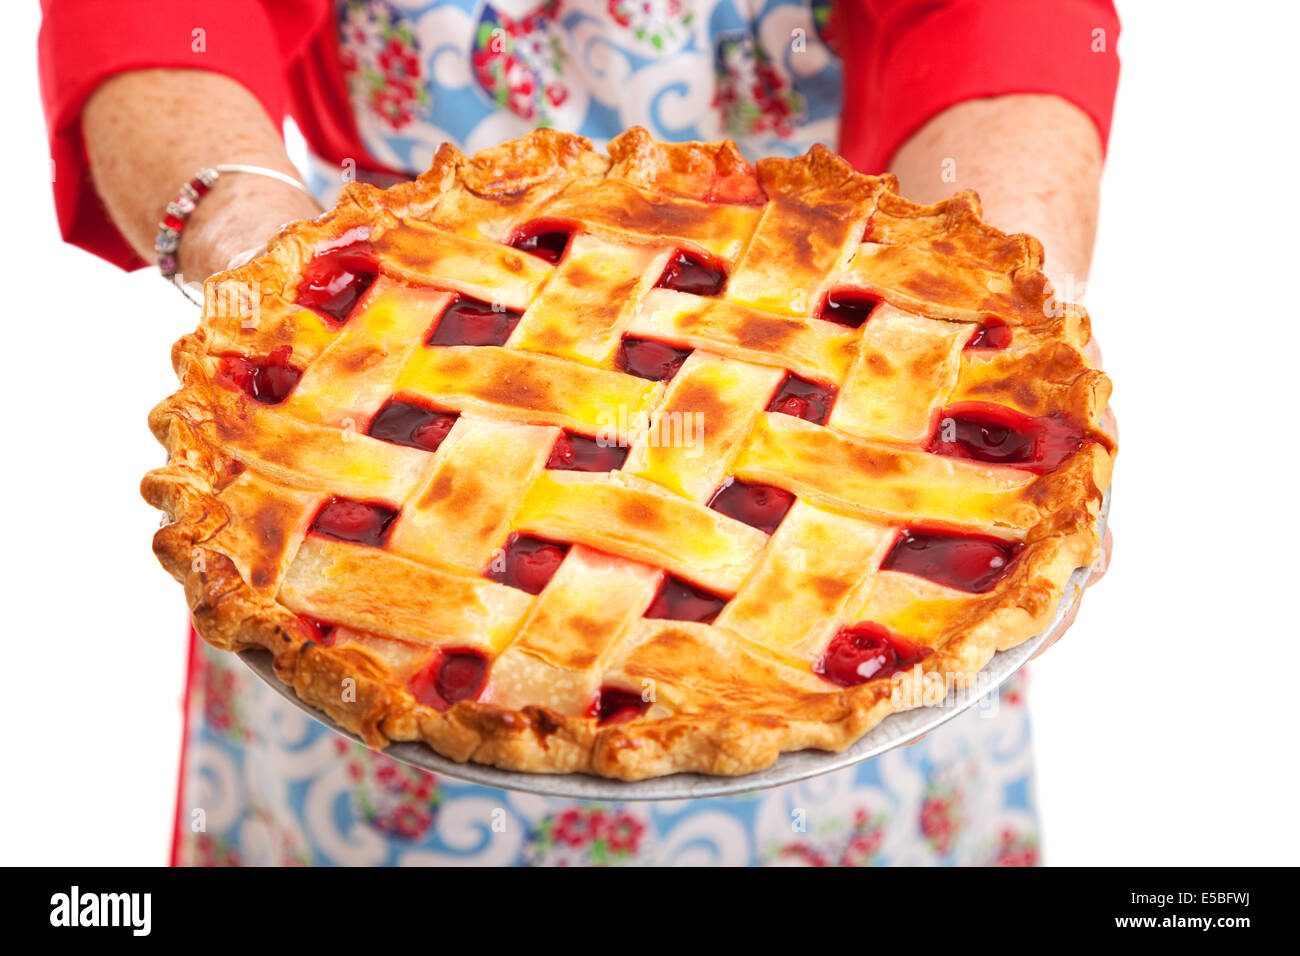 9c27d19d Closeup of a homemade cherry pie being held by a stereotypical grandma.  Isolated on white